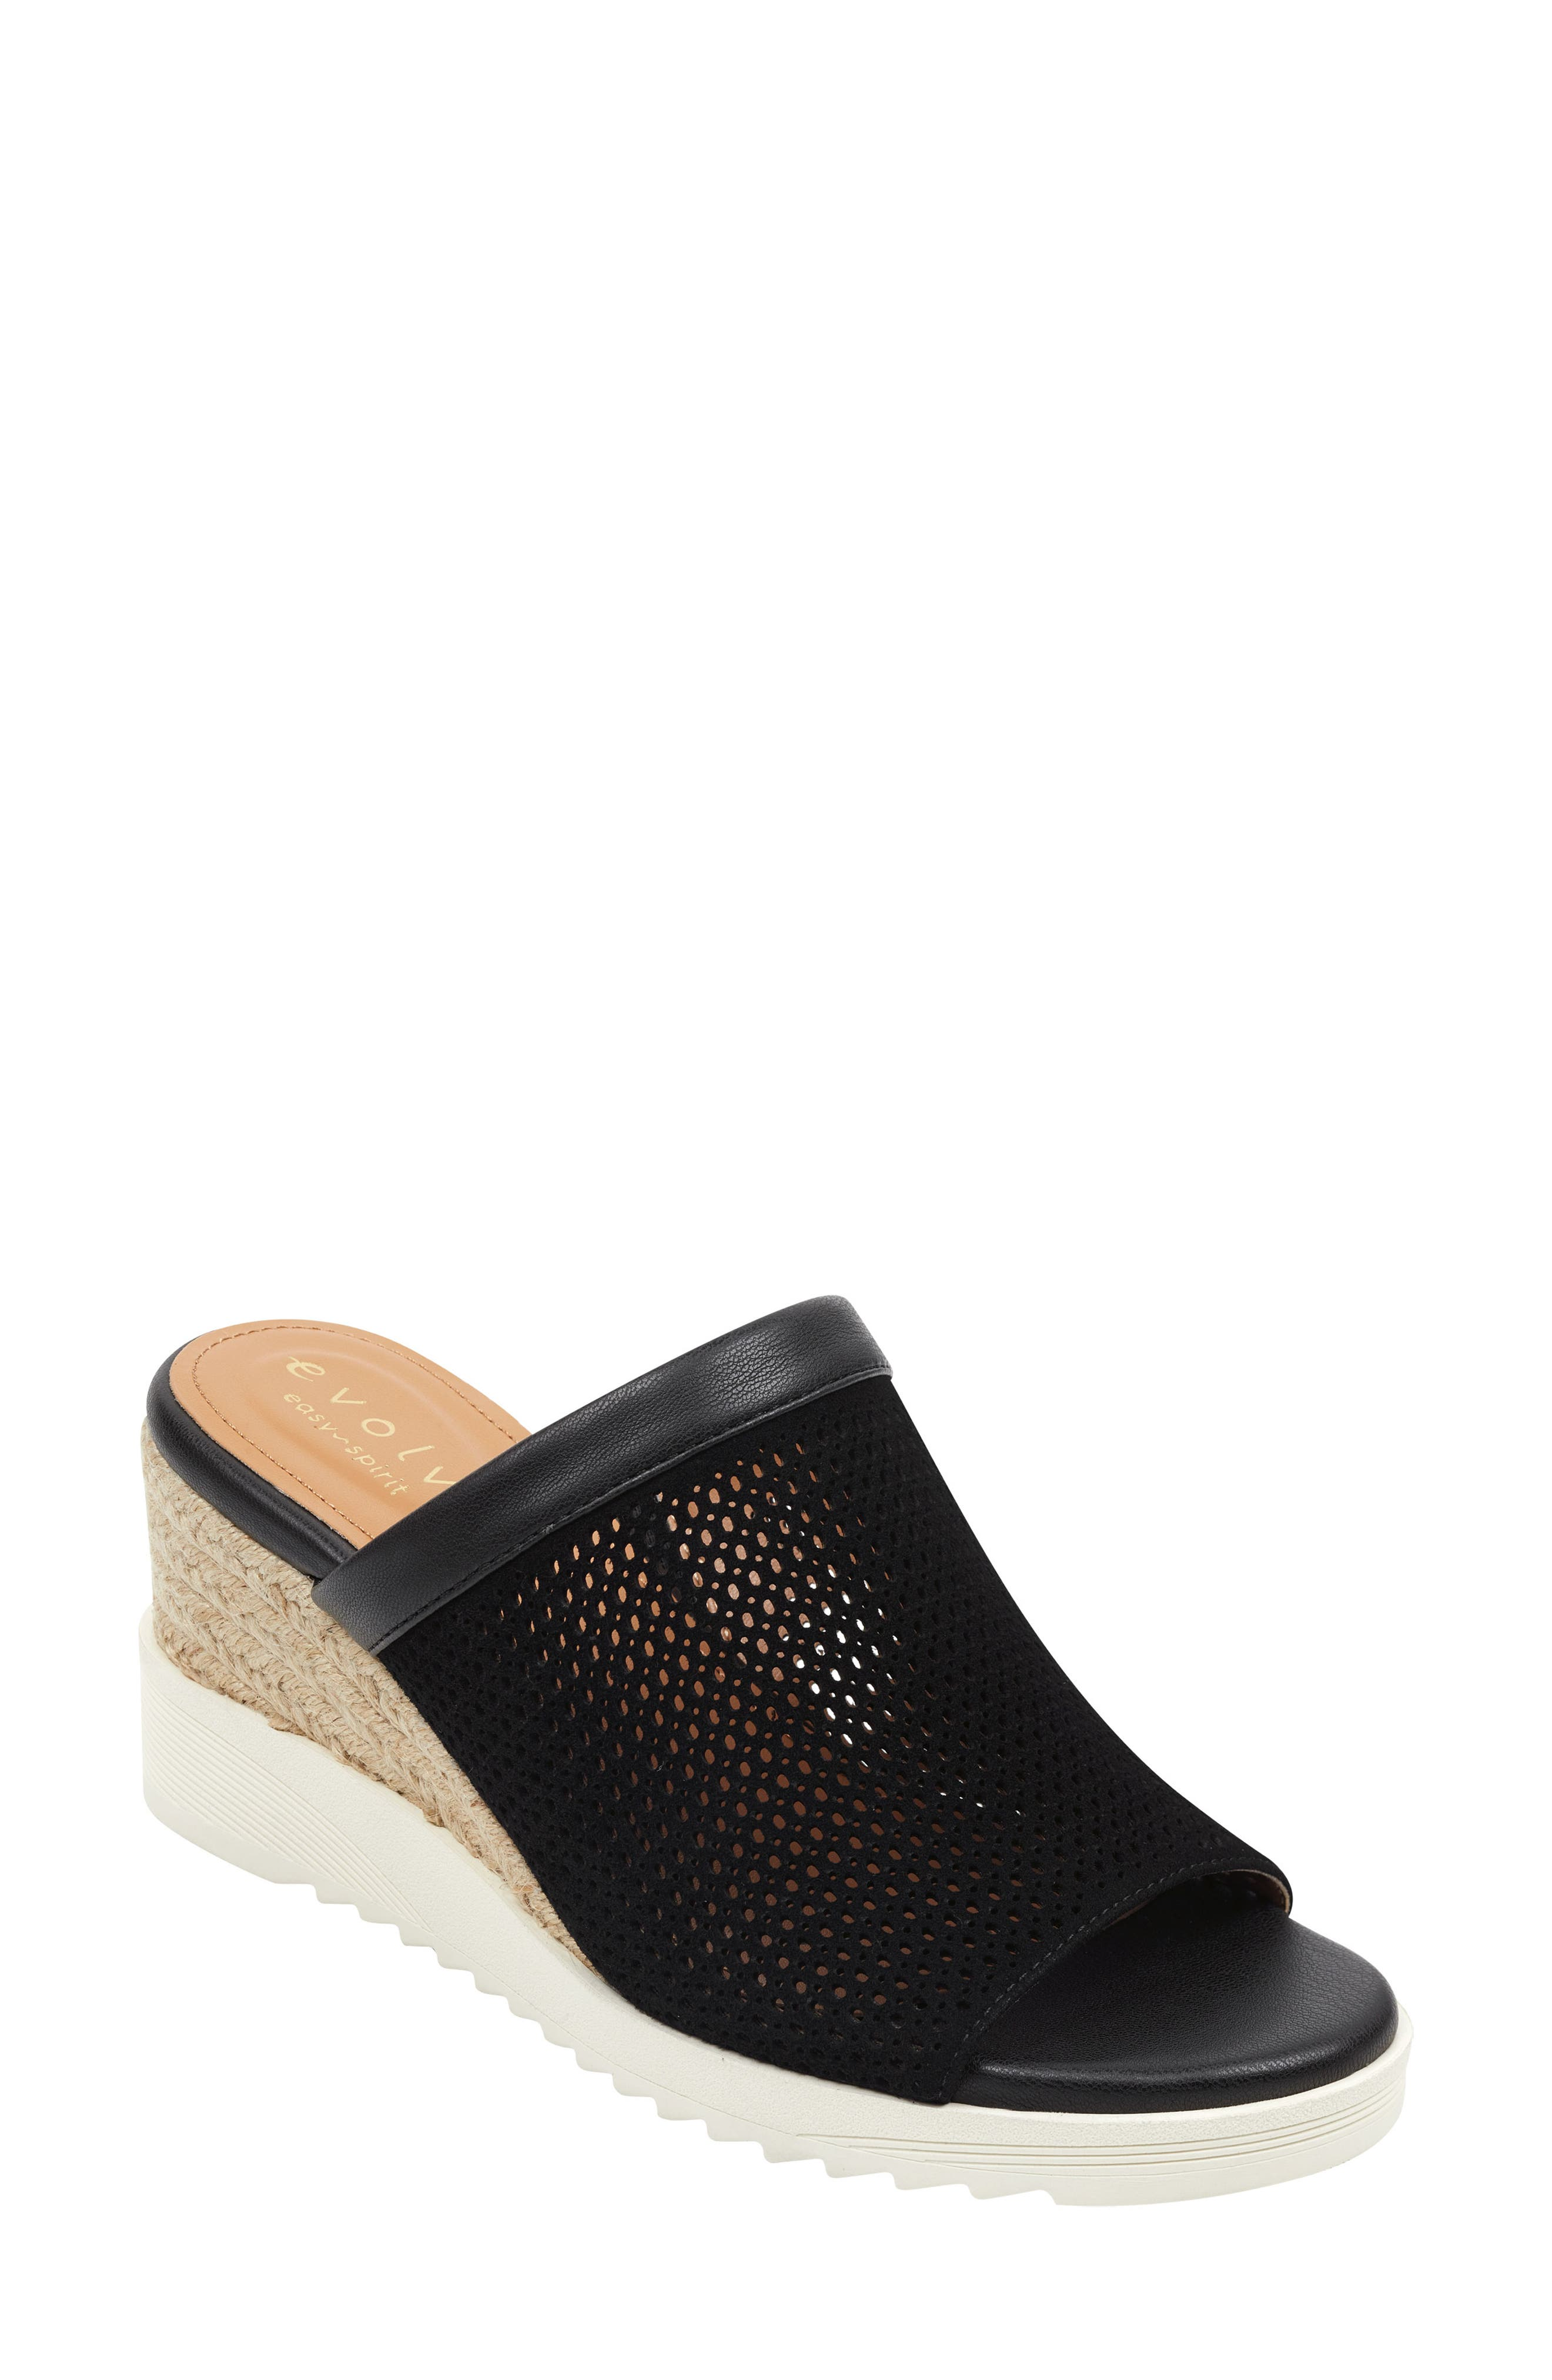 Zooey Wedge Slide Sandal, Main, color, BLACK SUEDE